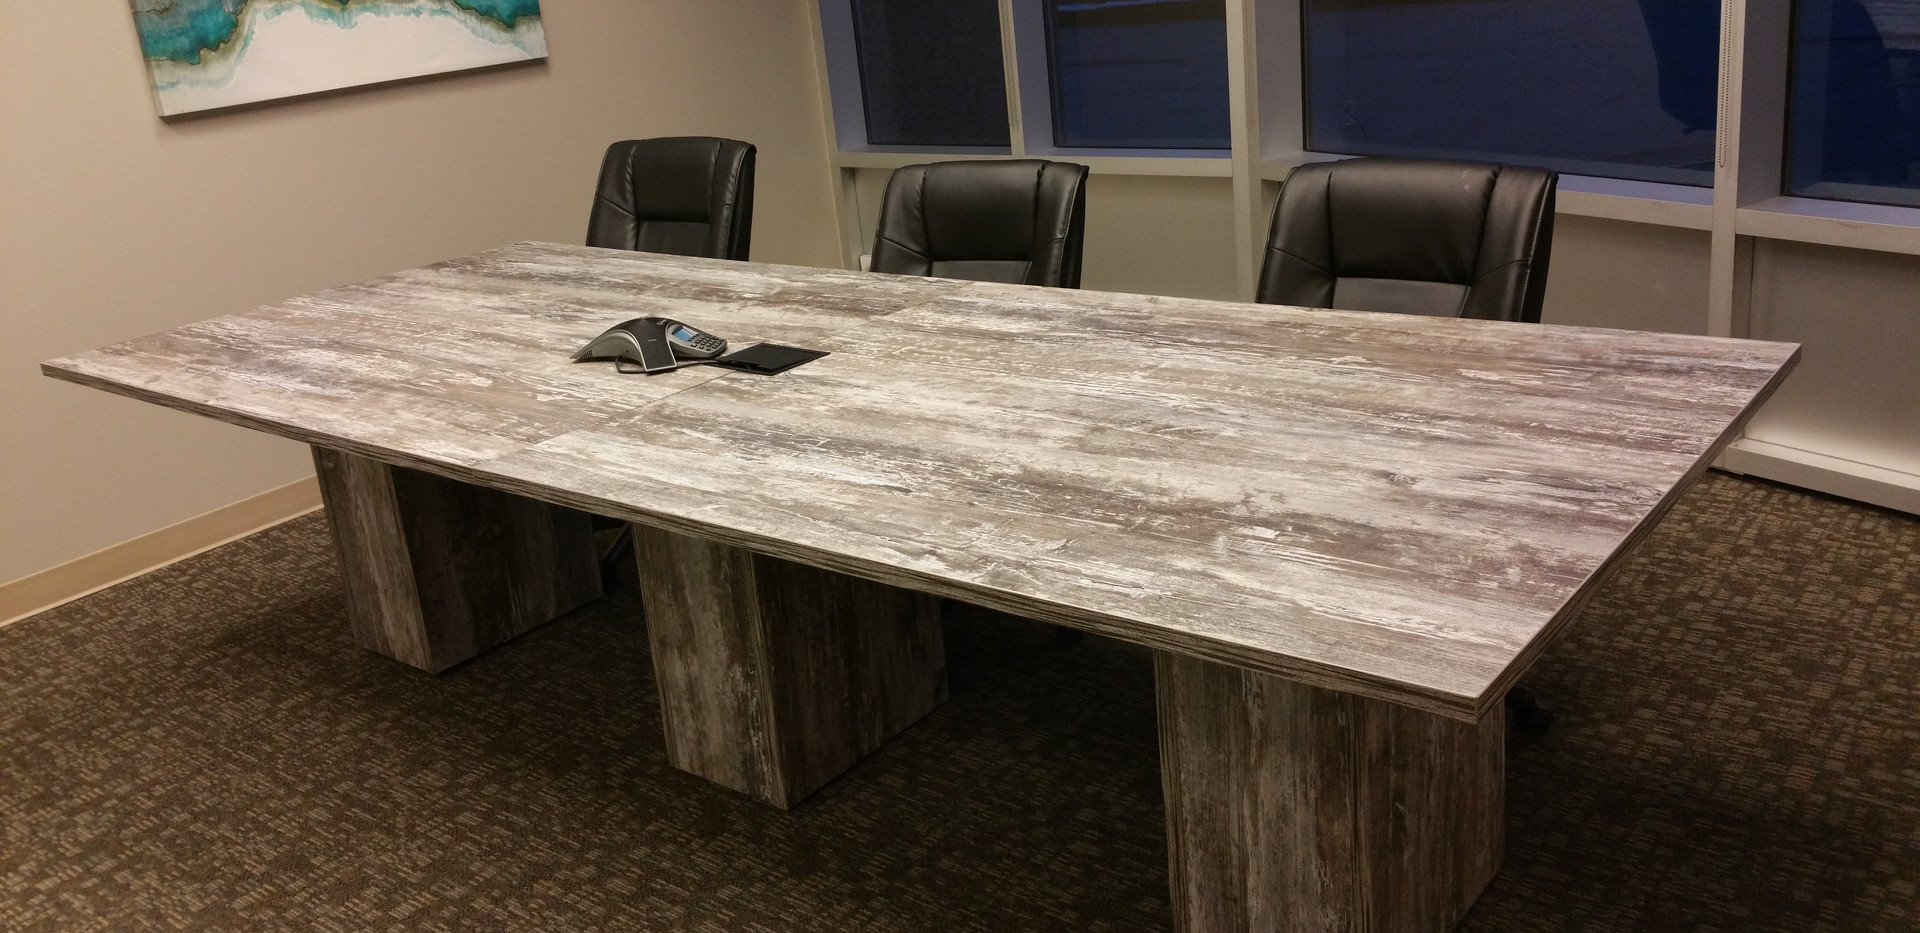 10' conference table in intrigue laminate with matching supporting panel based legs and a data port